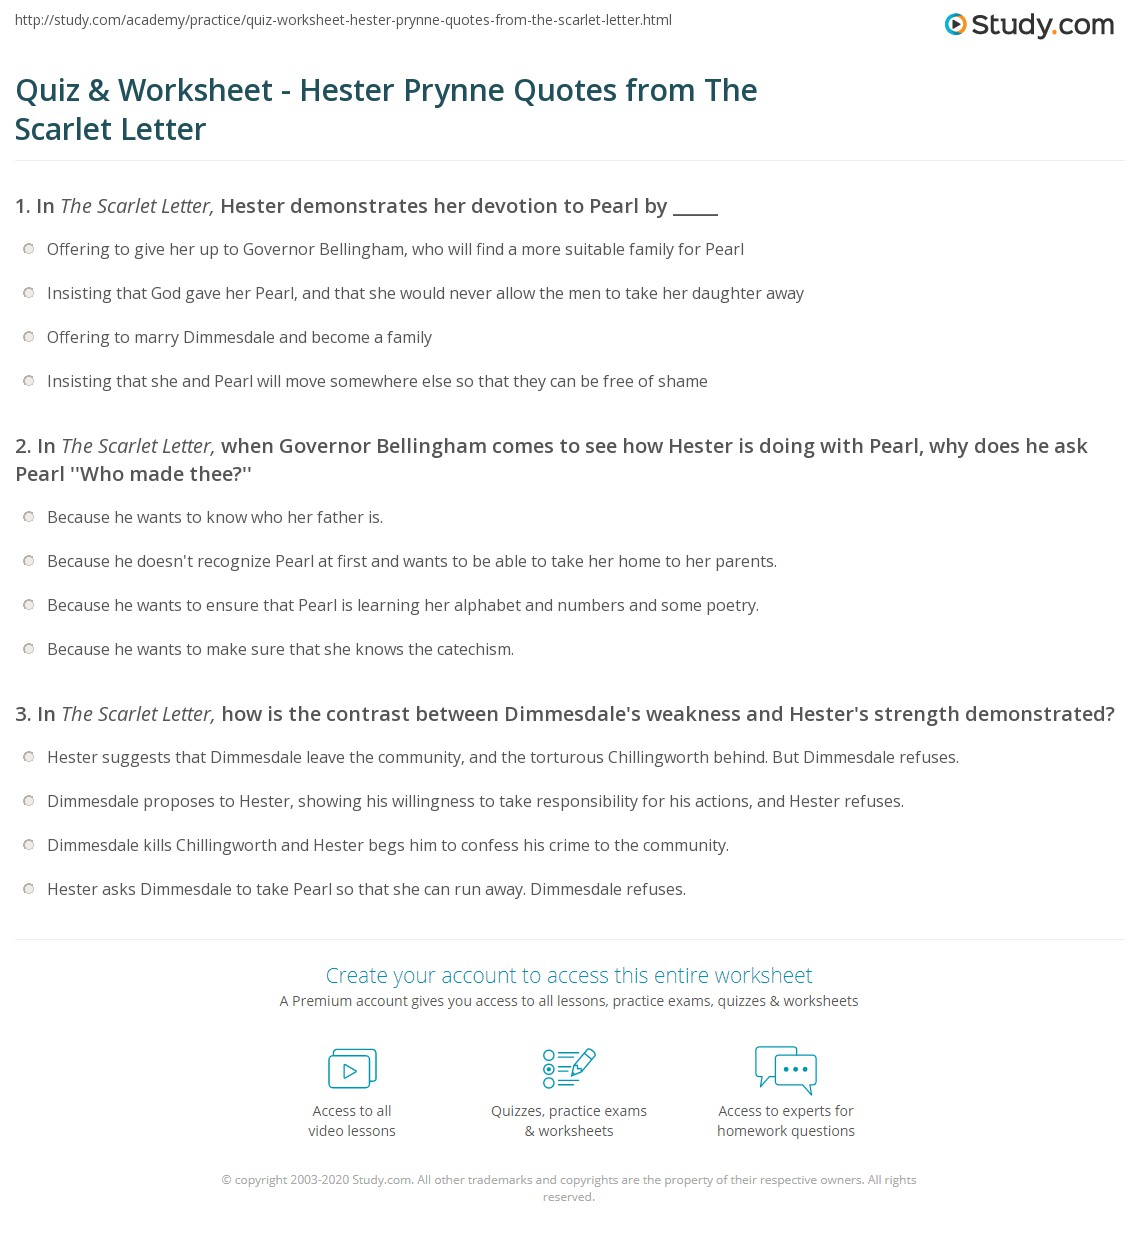 quiz worksheet hester prynne quotes from the scarlet letter print the scarlet letter hester prynne quotes examples analysis worksheet